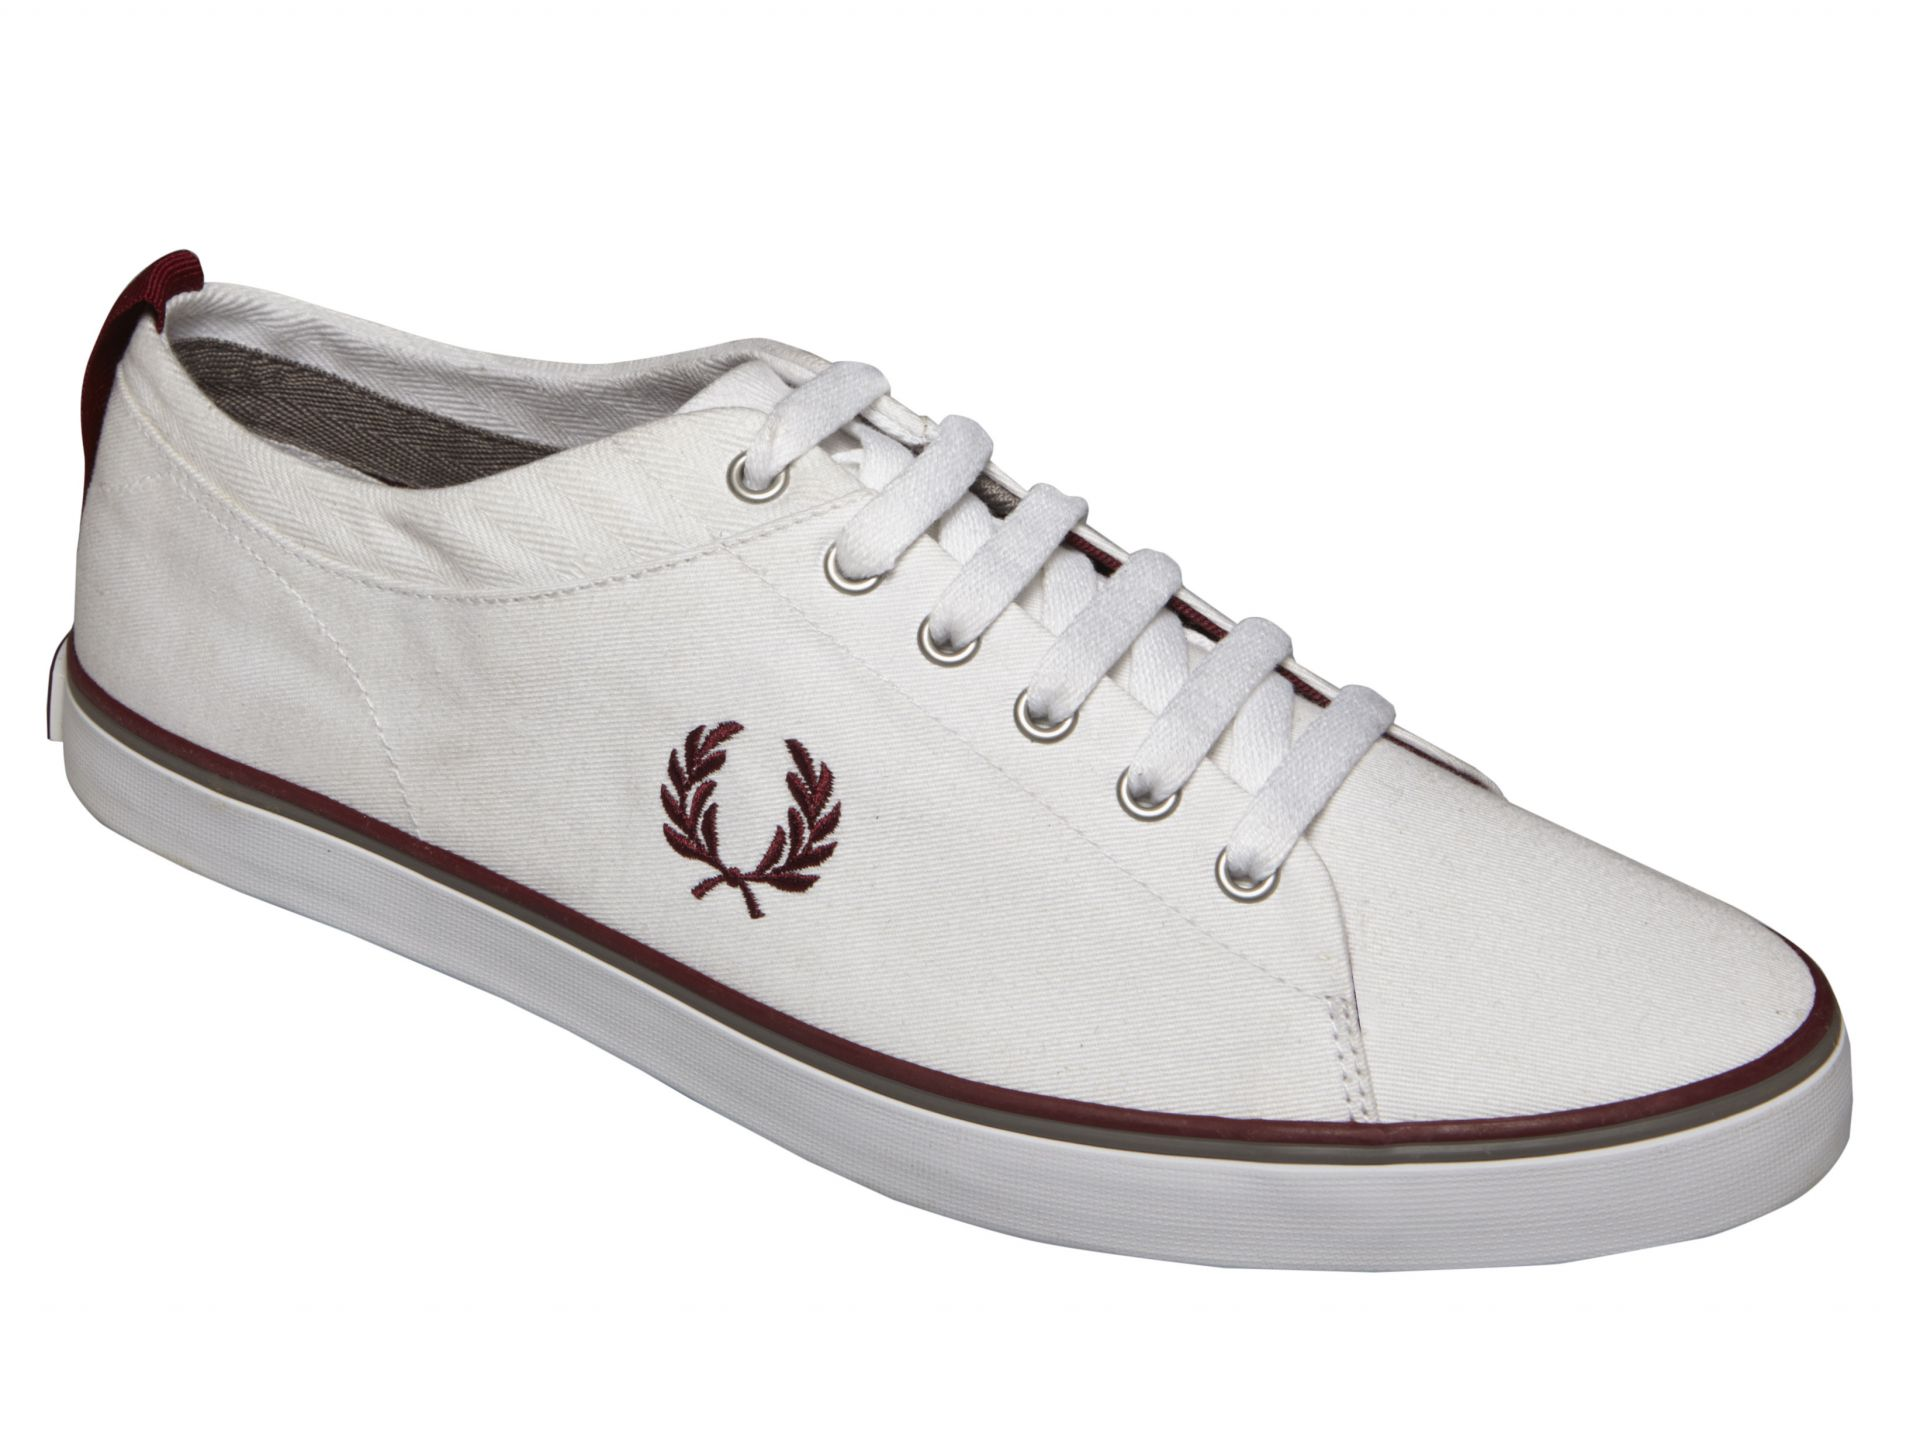 Fred Perry Men's Hallam Canvas Tennis Shoe - White - 7.5